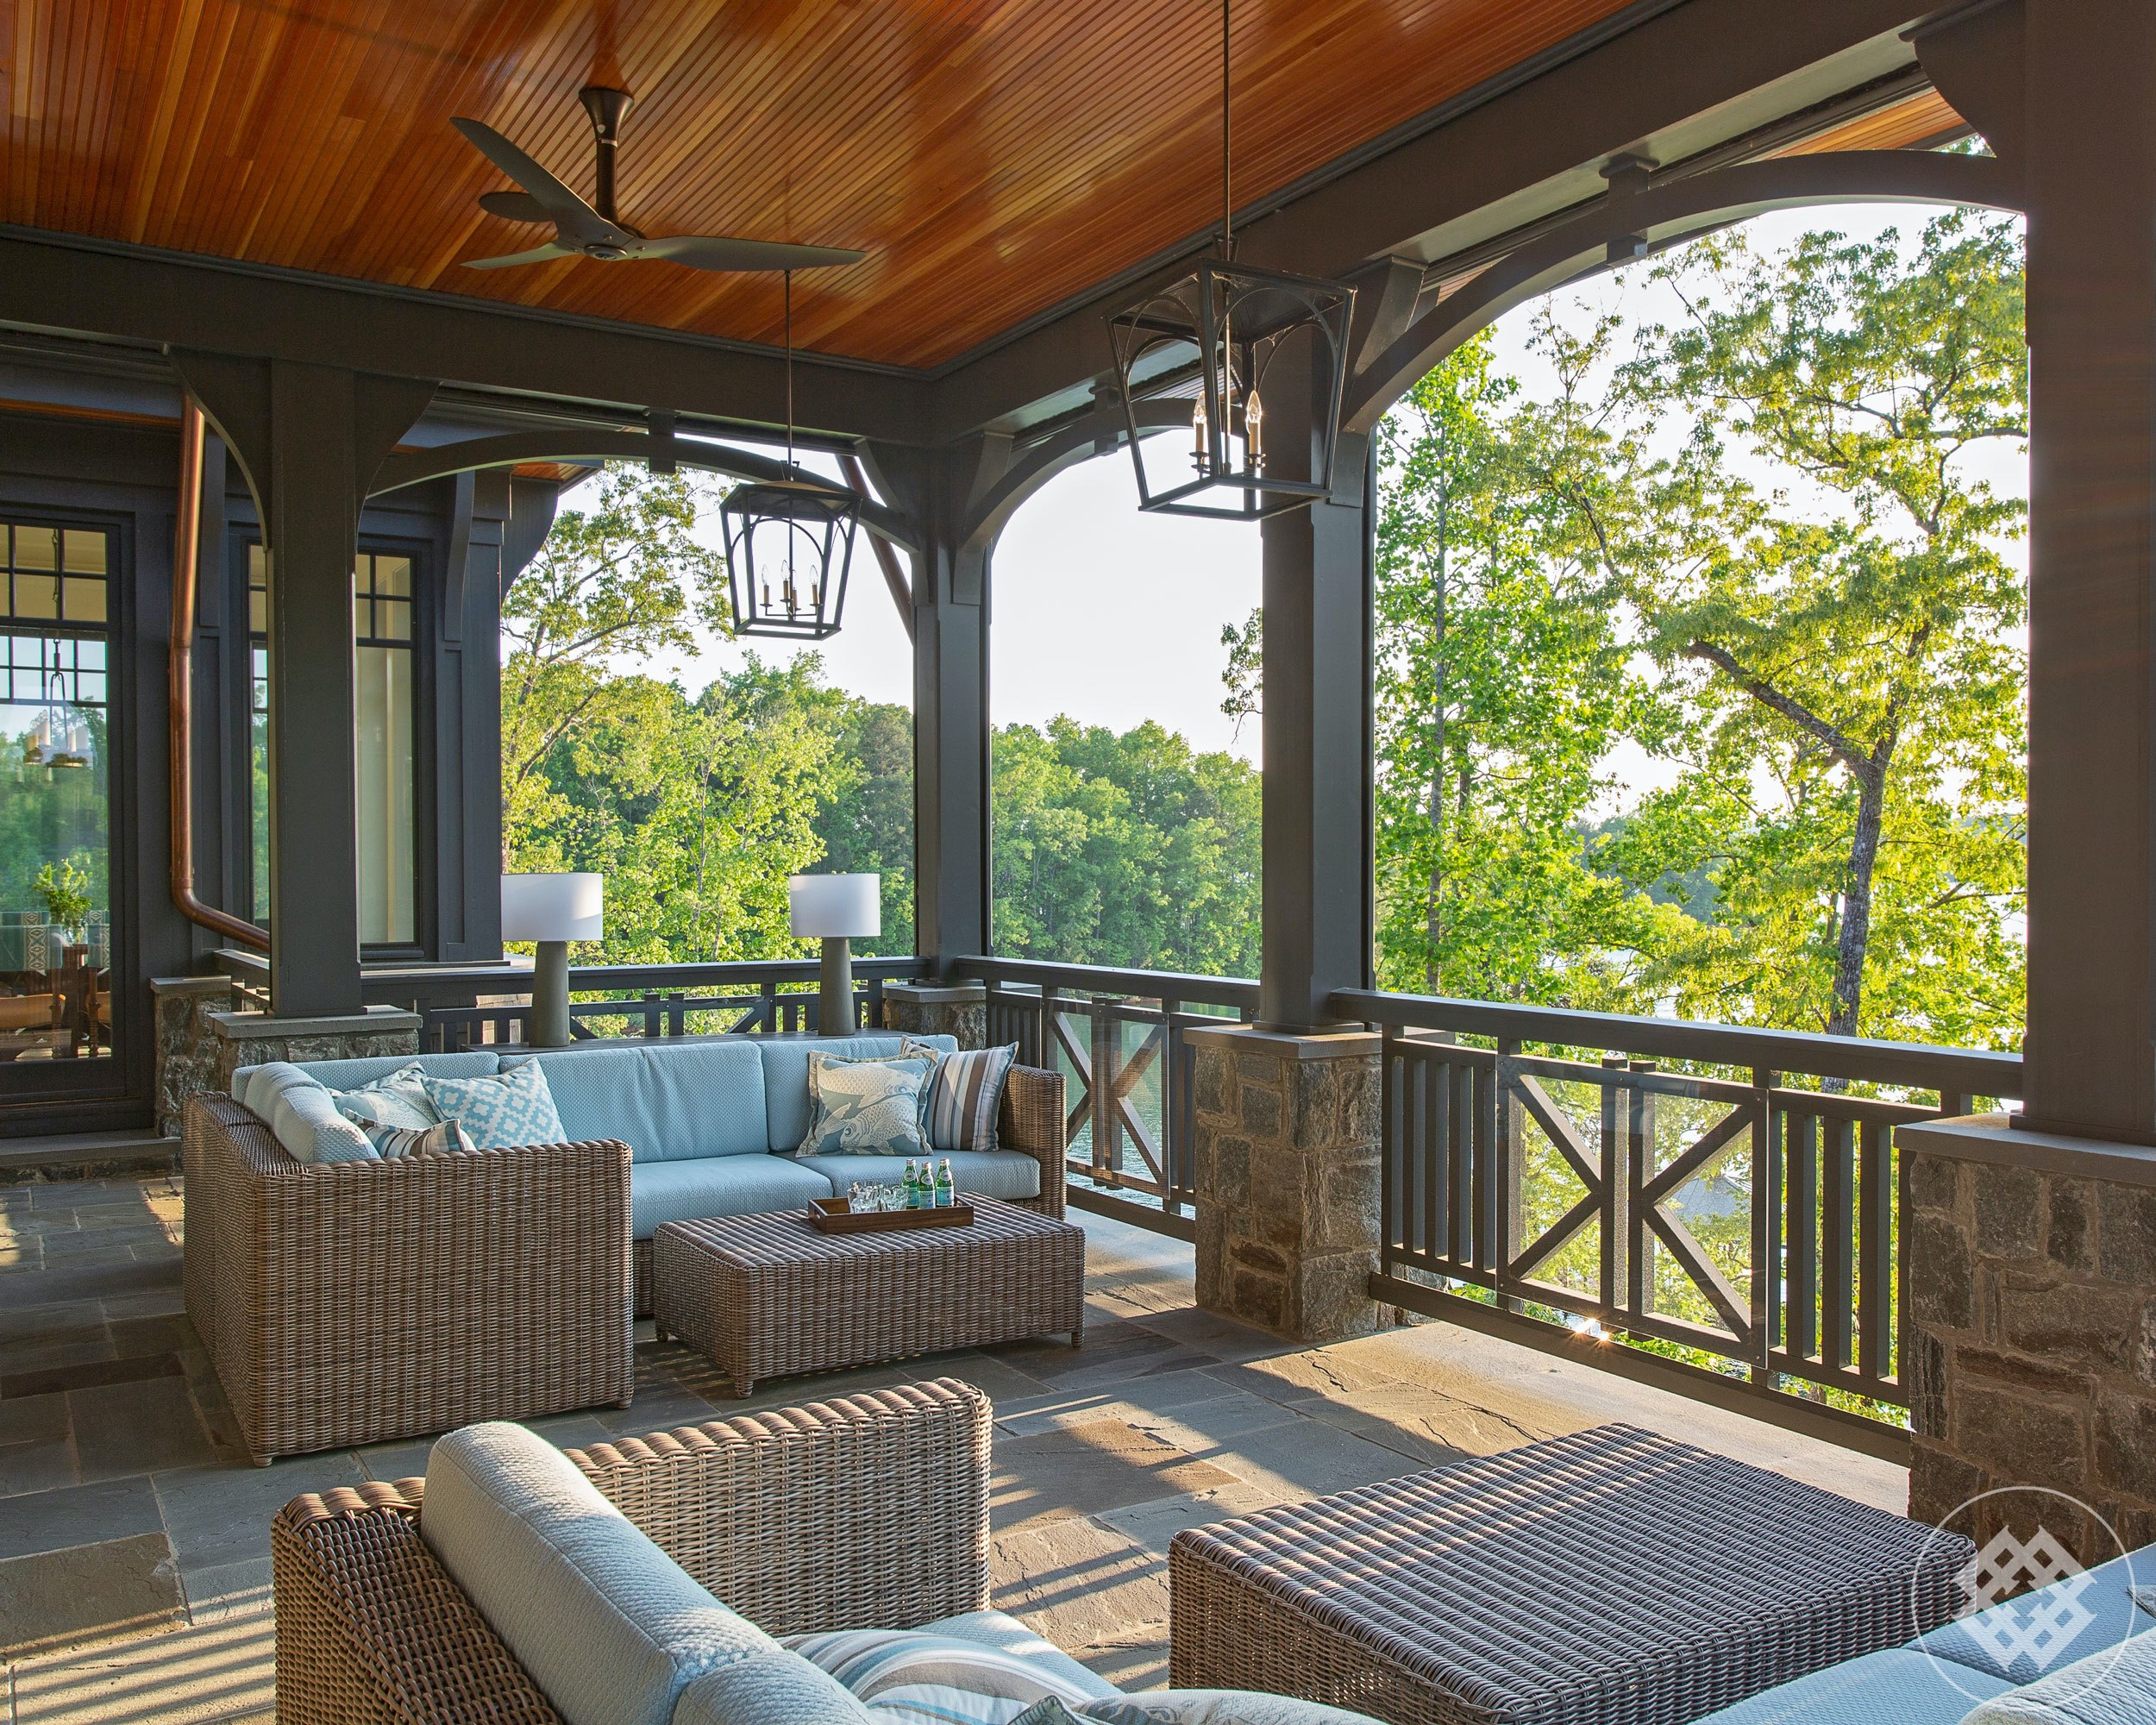 kkl-kingsley-bates-outdoor-wicker-furniture-lake-keowee.jpg